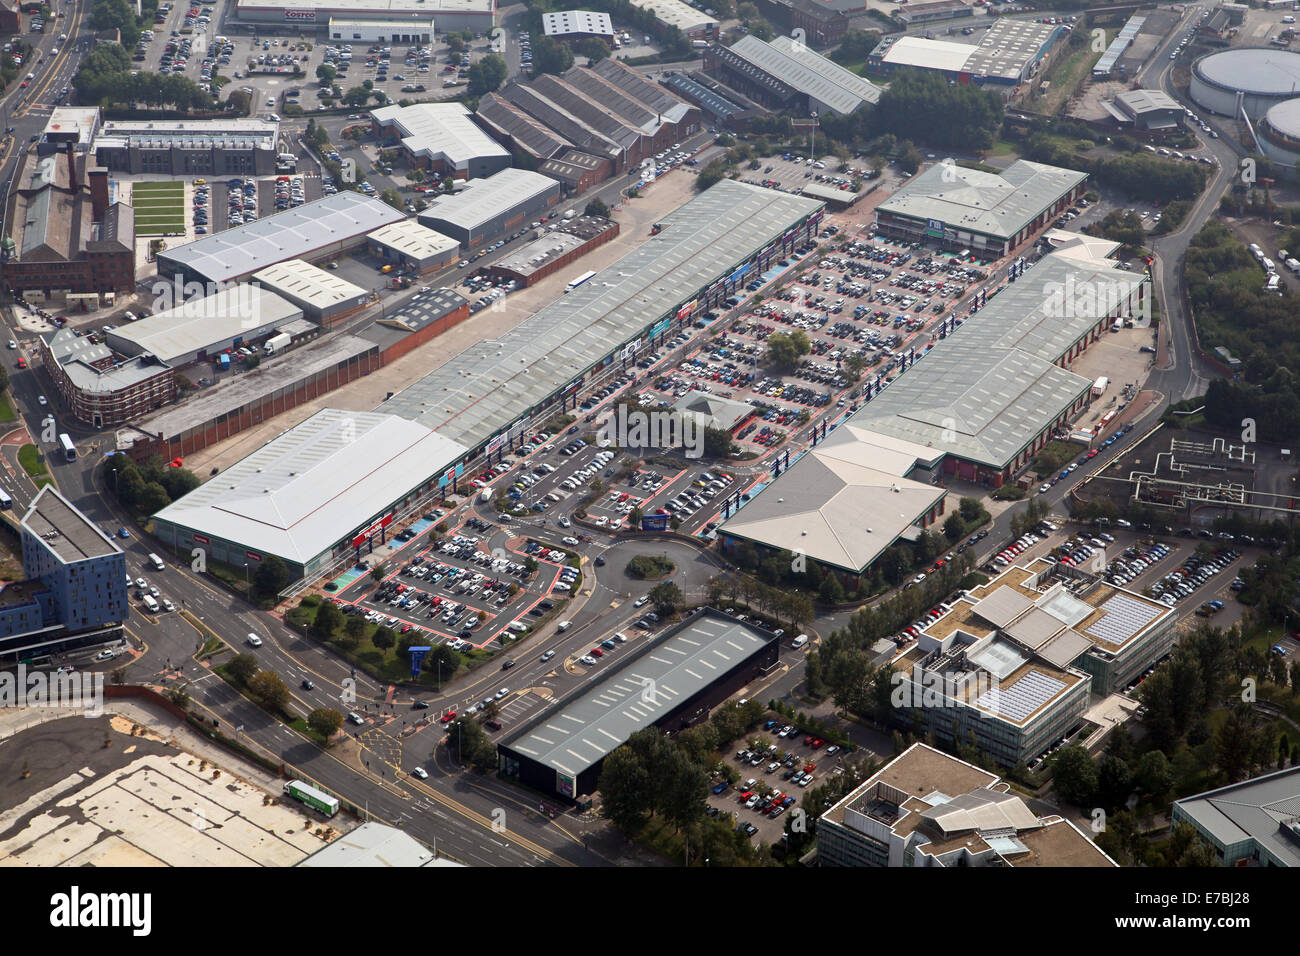 aerial view of Crown Point Retail Park in south Leeds, UK - Stock Image